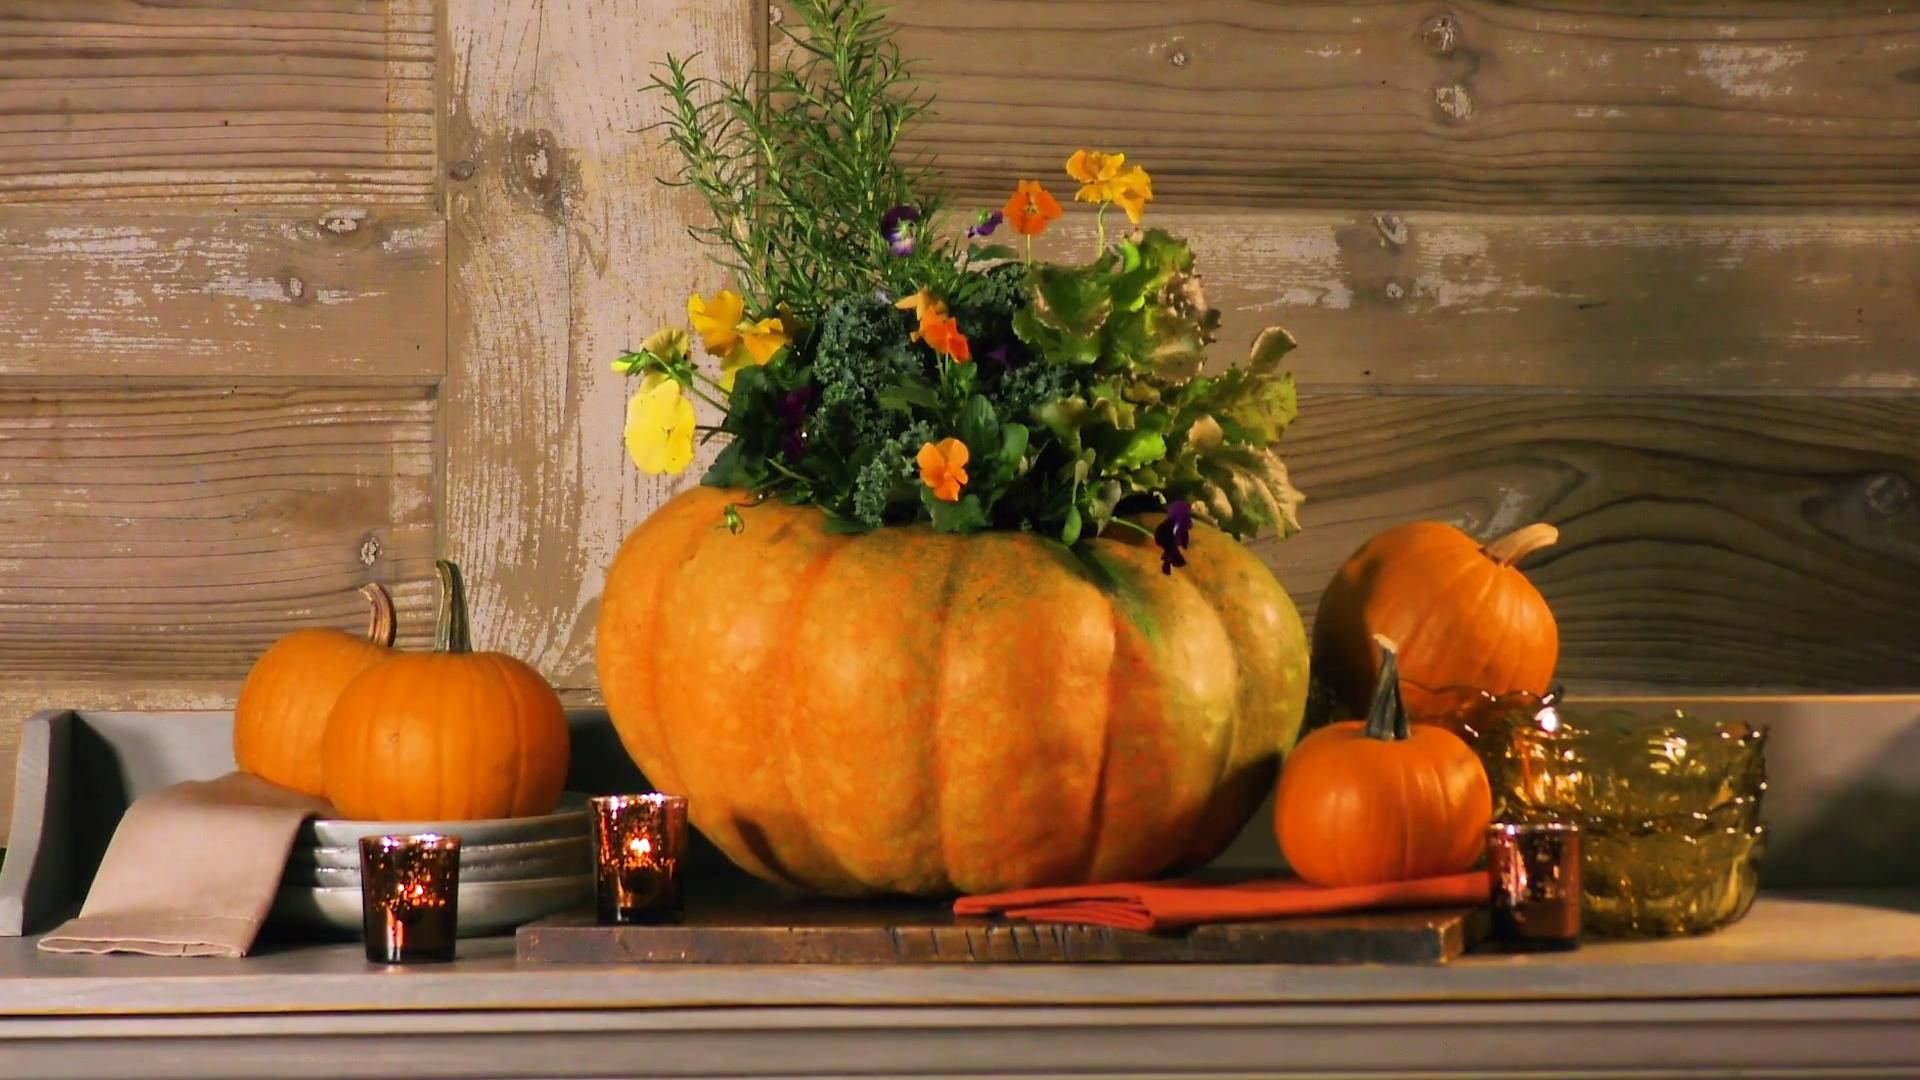 How To Make A Blooming Pumpkin: